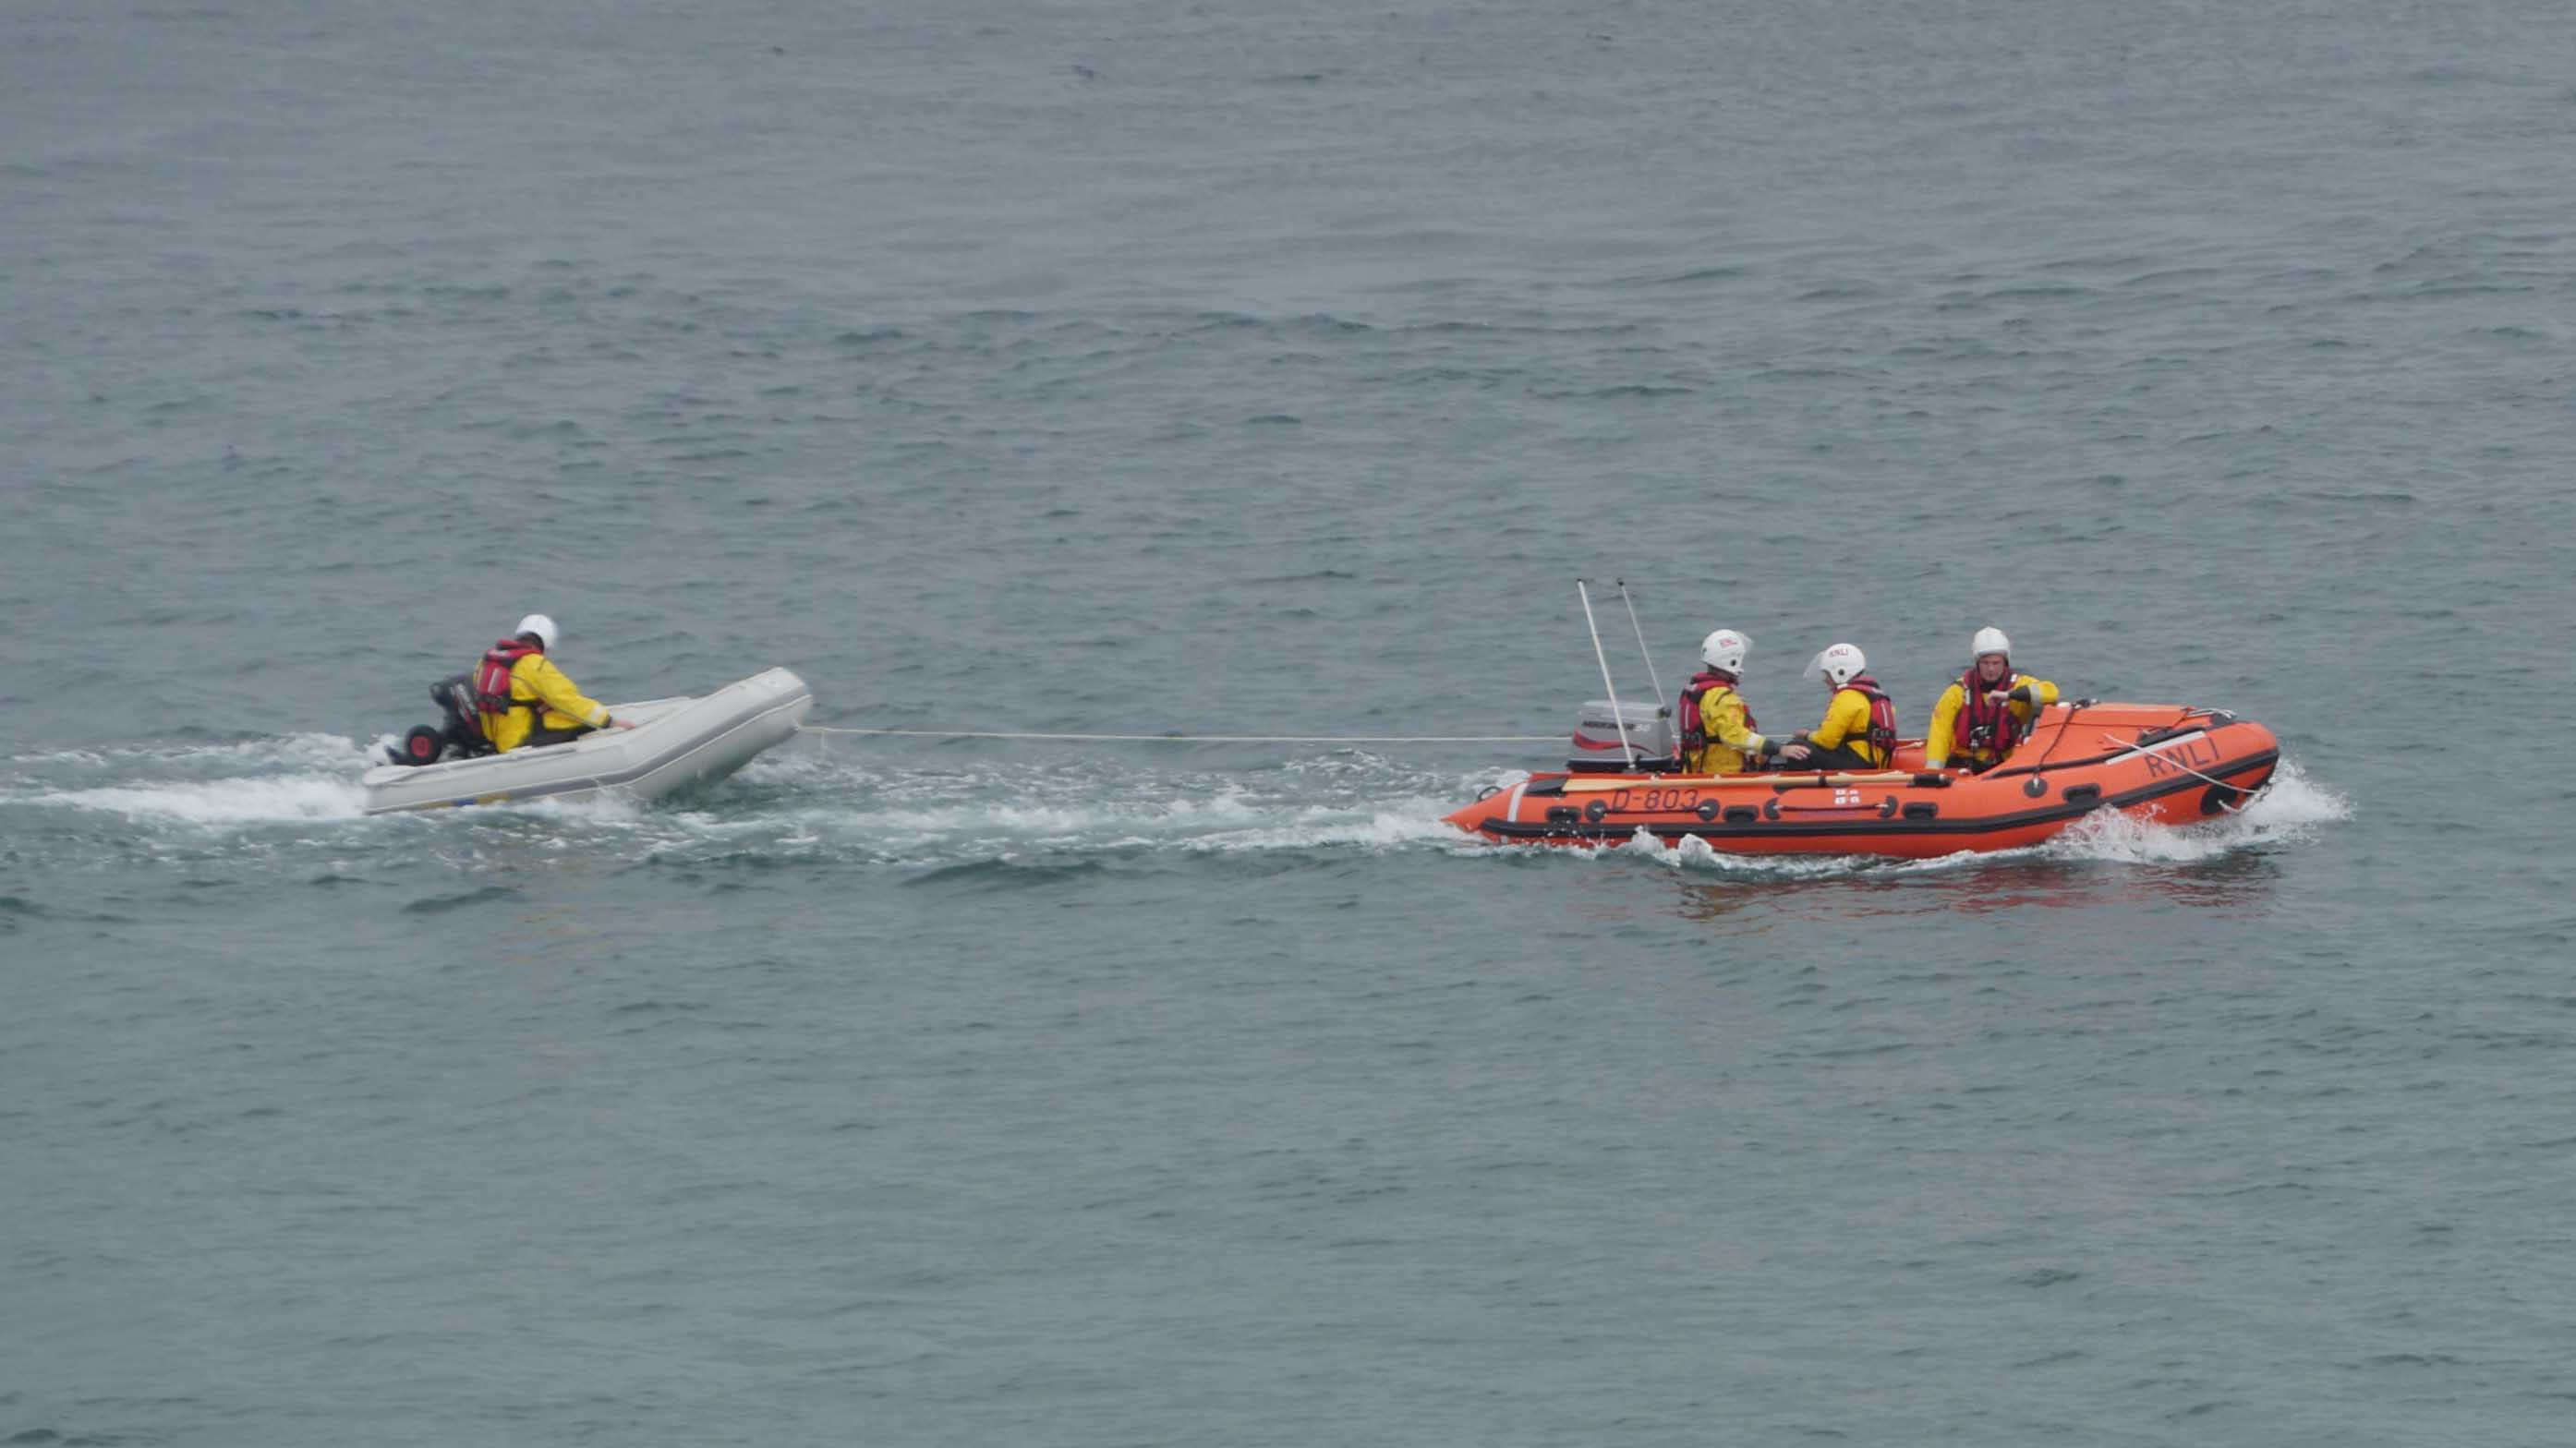 St Ives inshore lifeboat towing the dinghy